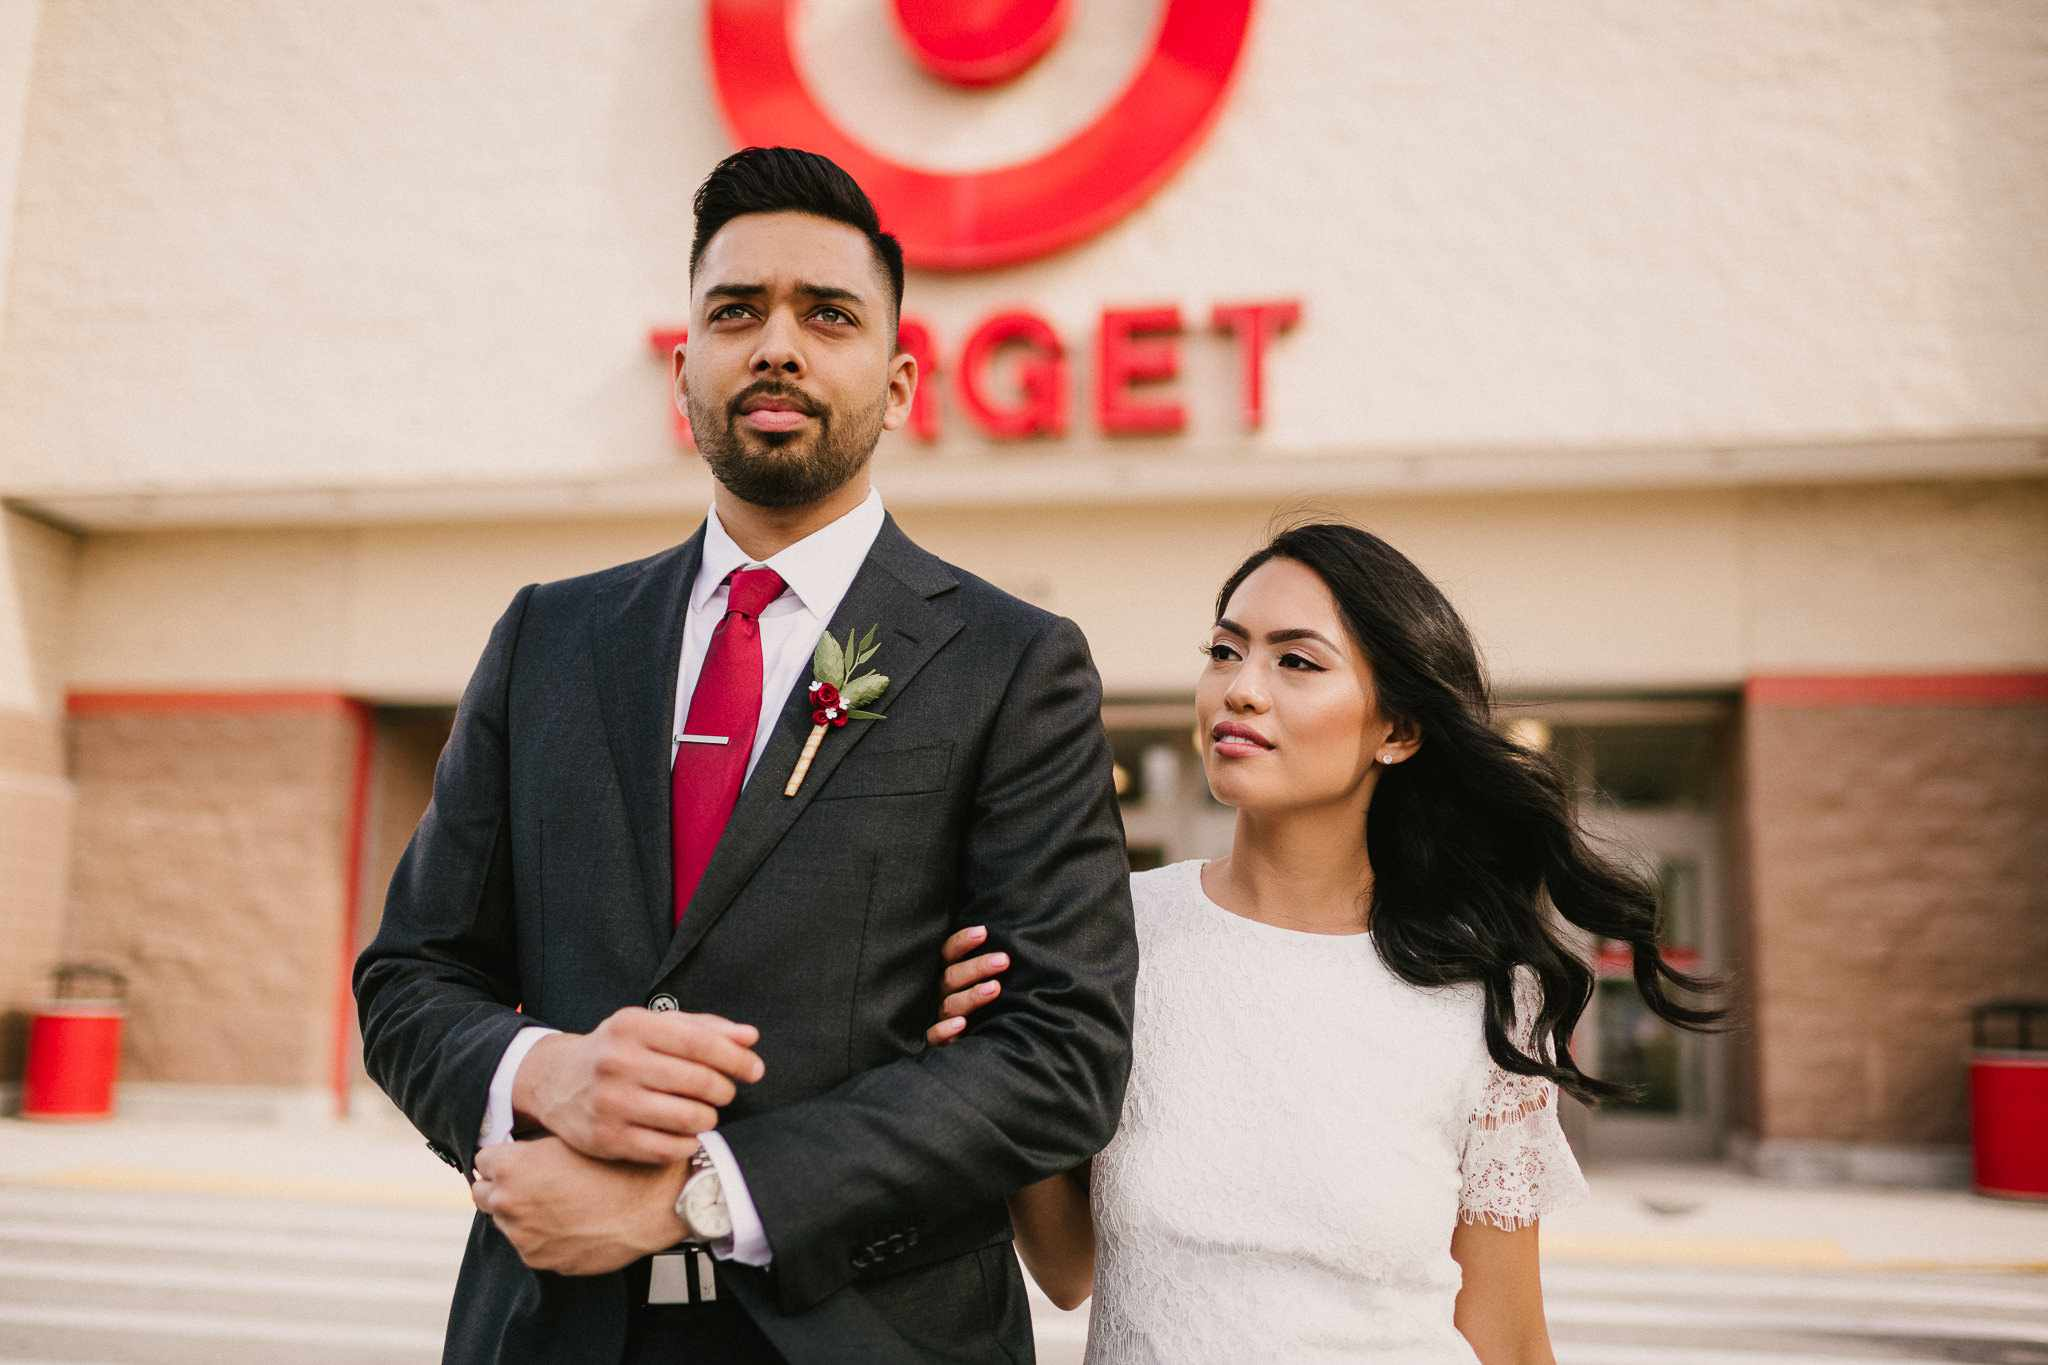 Target Wedding Dresses.This Target Wedding Photo Shoot Is The Best Thing You Ll See All Day